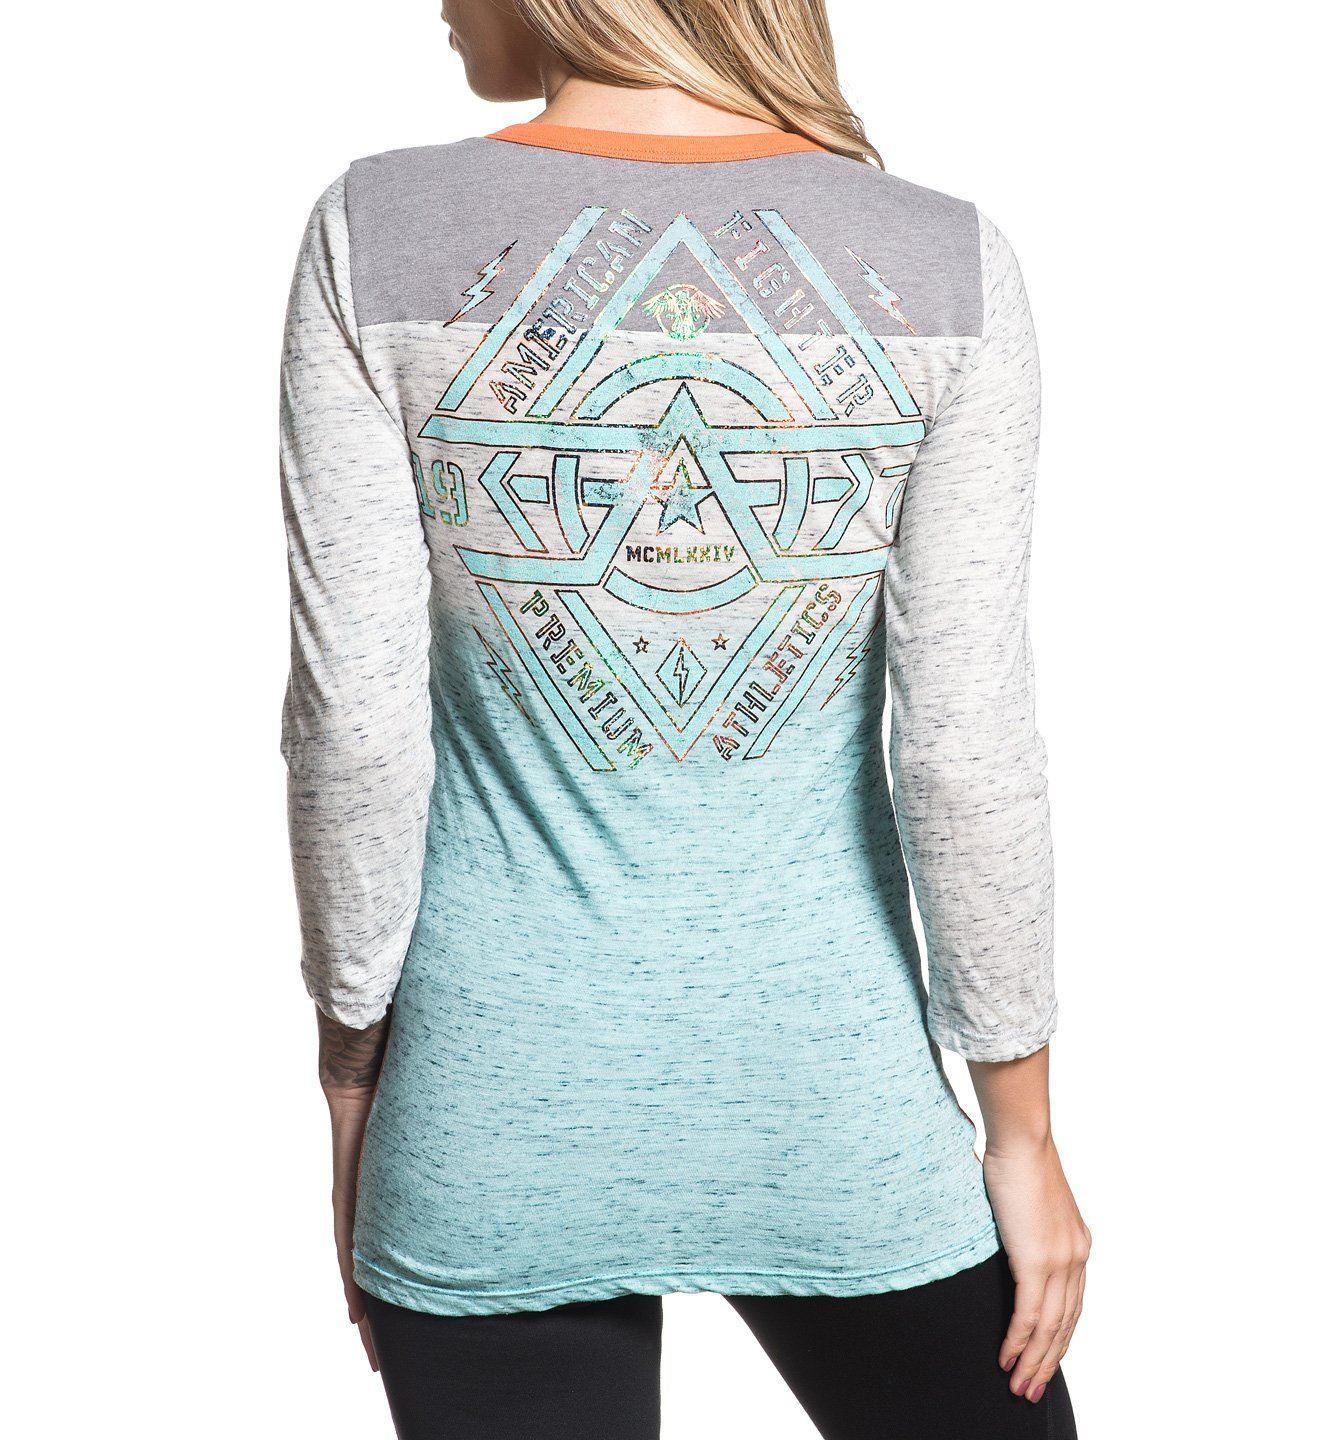 Westend - Womens Long Sleeve Tees - American Fighter